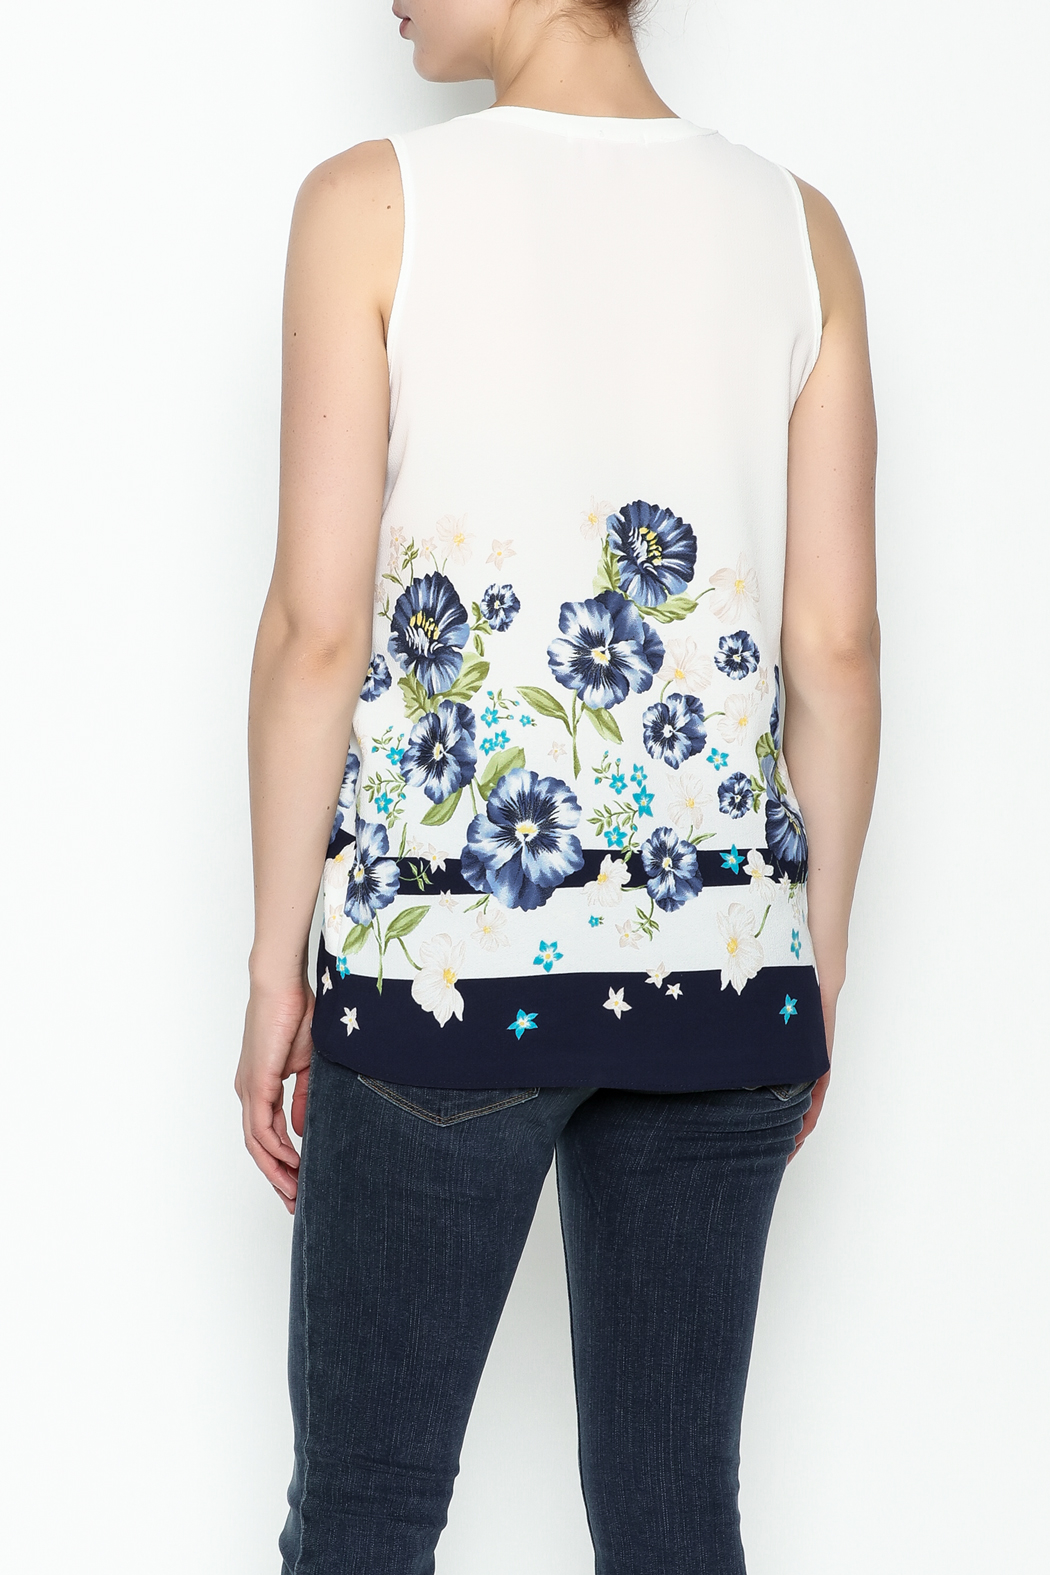 Marvy Fashion Flower Printed Top - Back Cropped Image